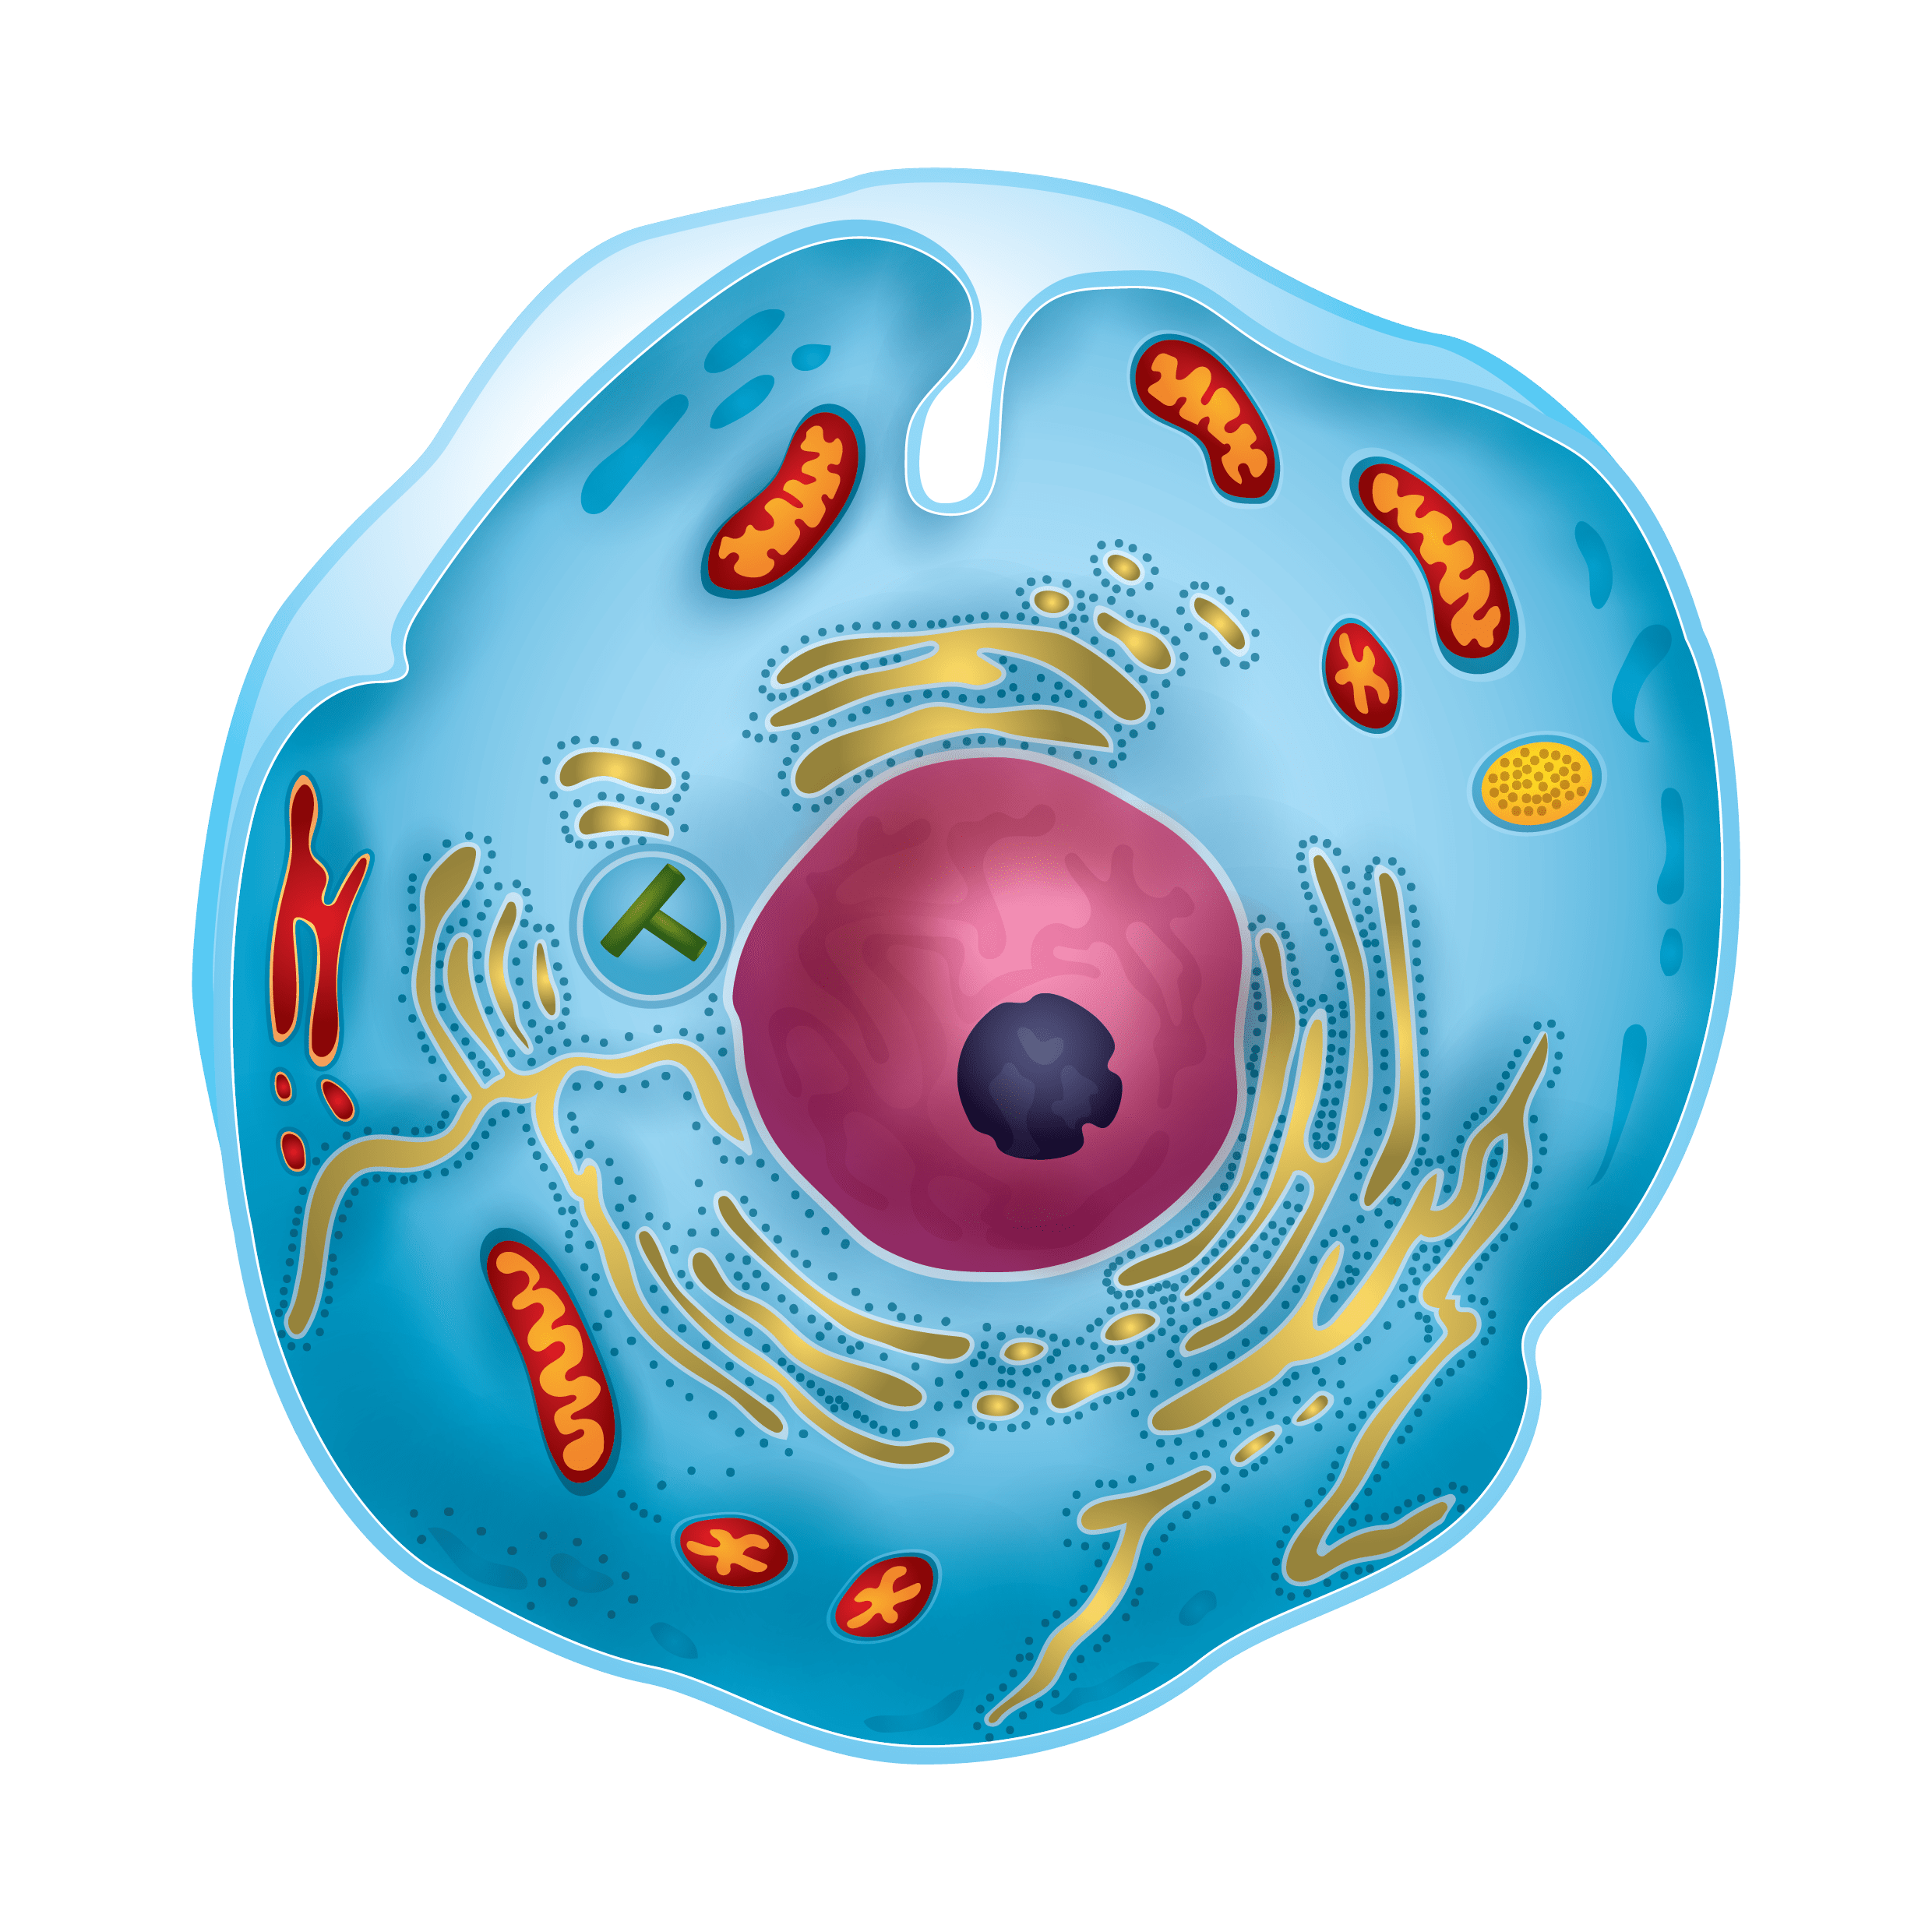 Mitosis Worksheet Amp Other Ideas To Teach Mitosis Effectively